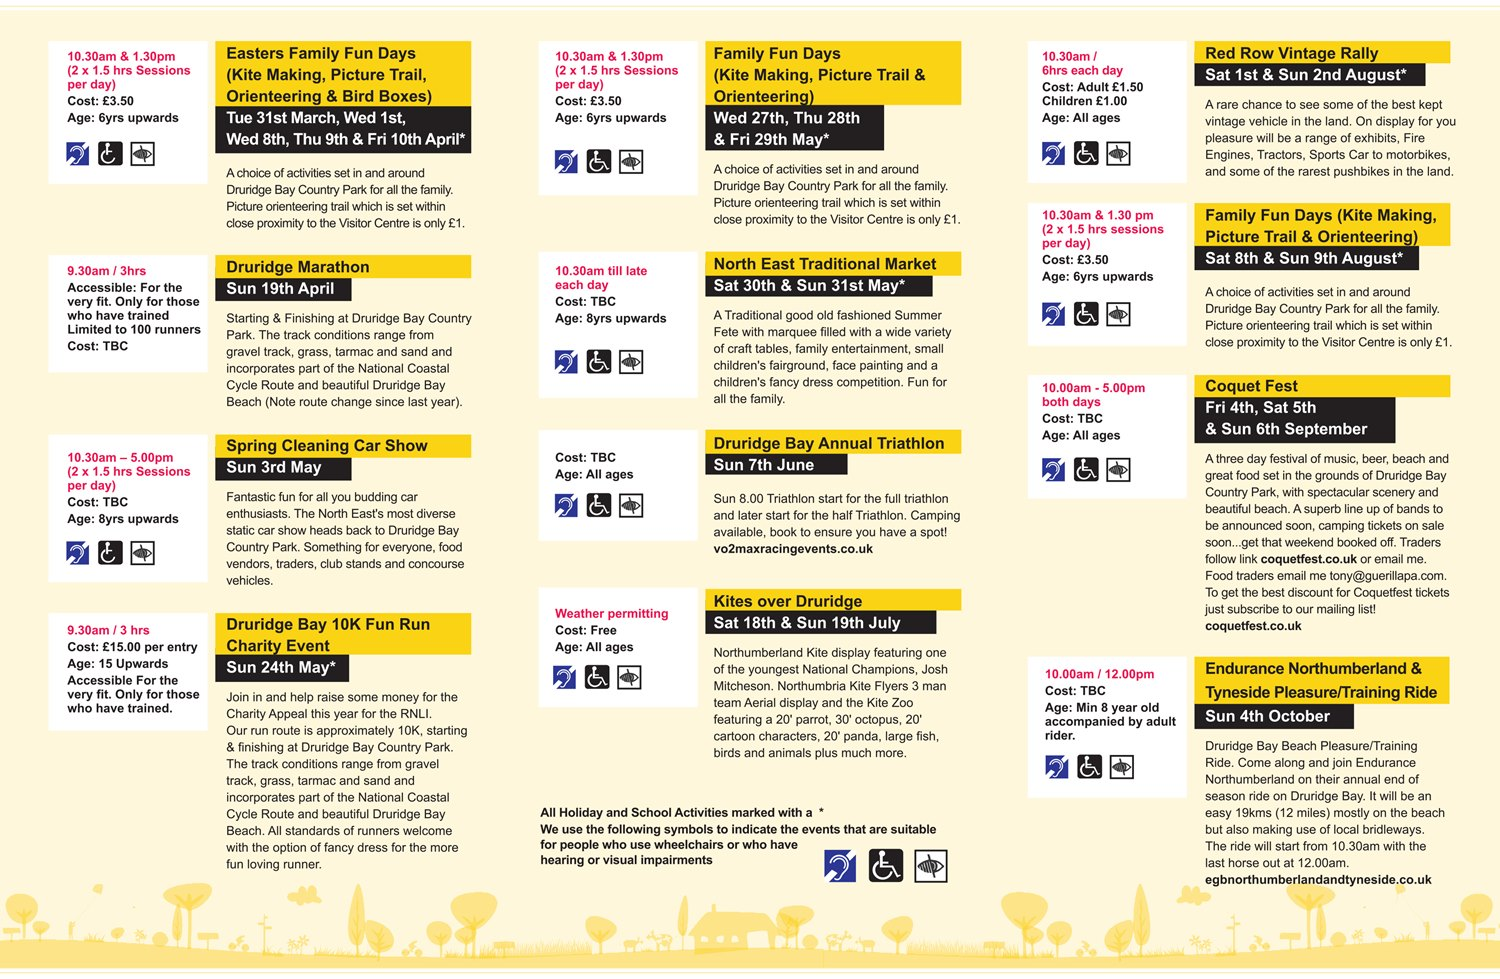 091 - Countryside Events Leaflet - Druridge 2015